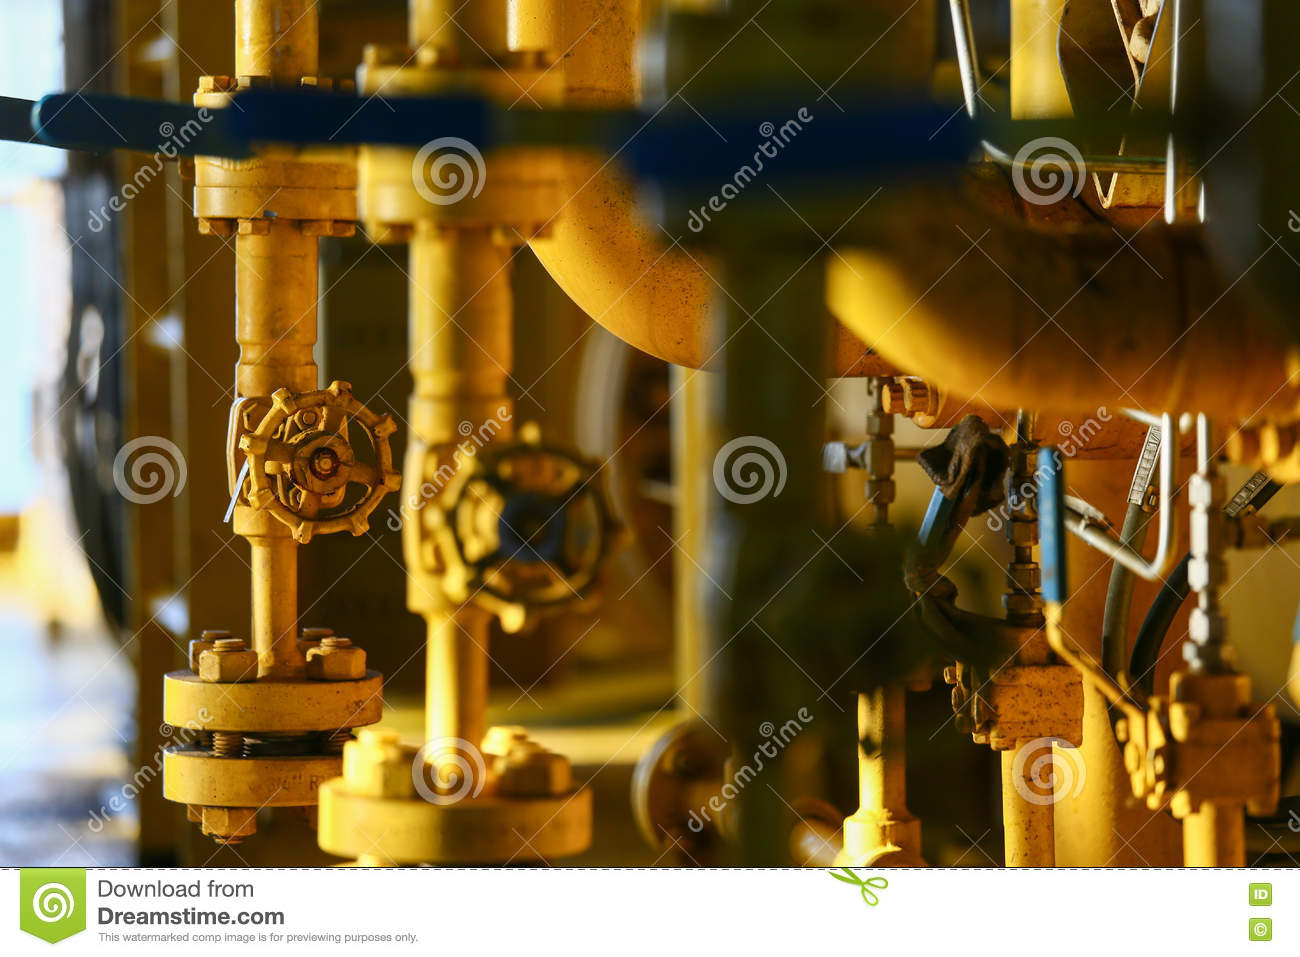 Valves manual in the process. Production process used manual valve to  control the system,